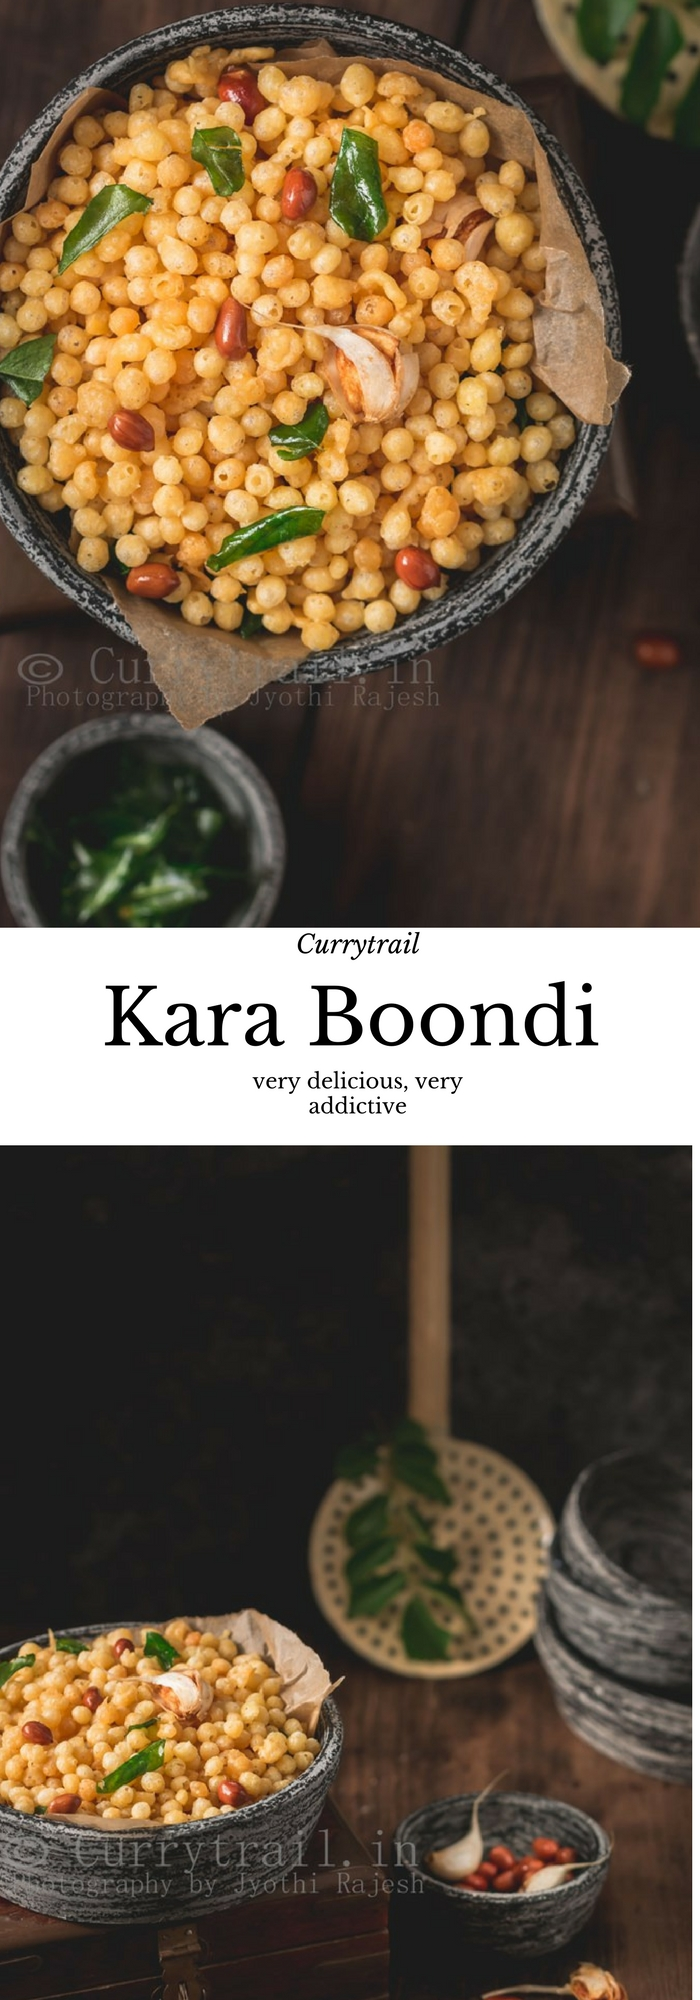 kara boondi recipe with text overlay